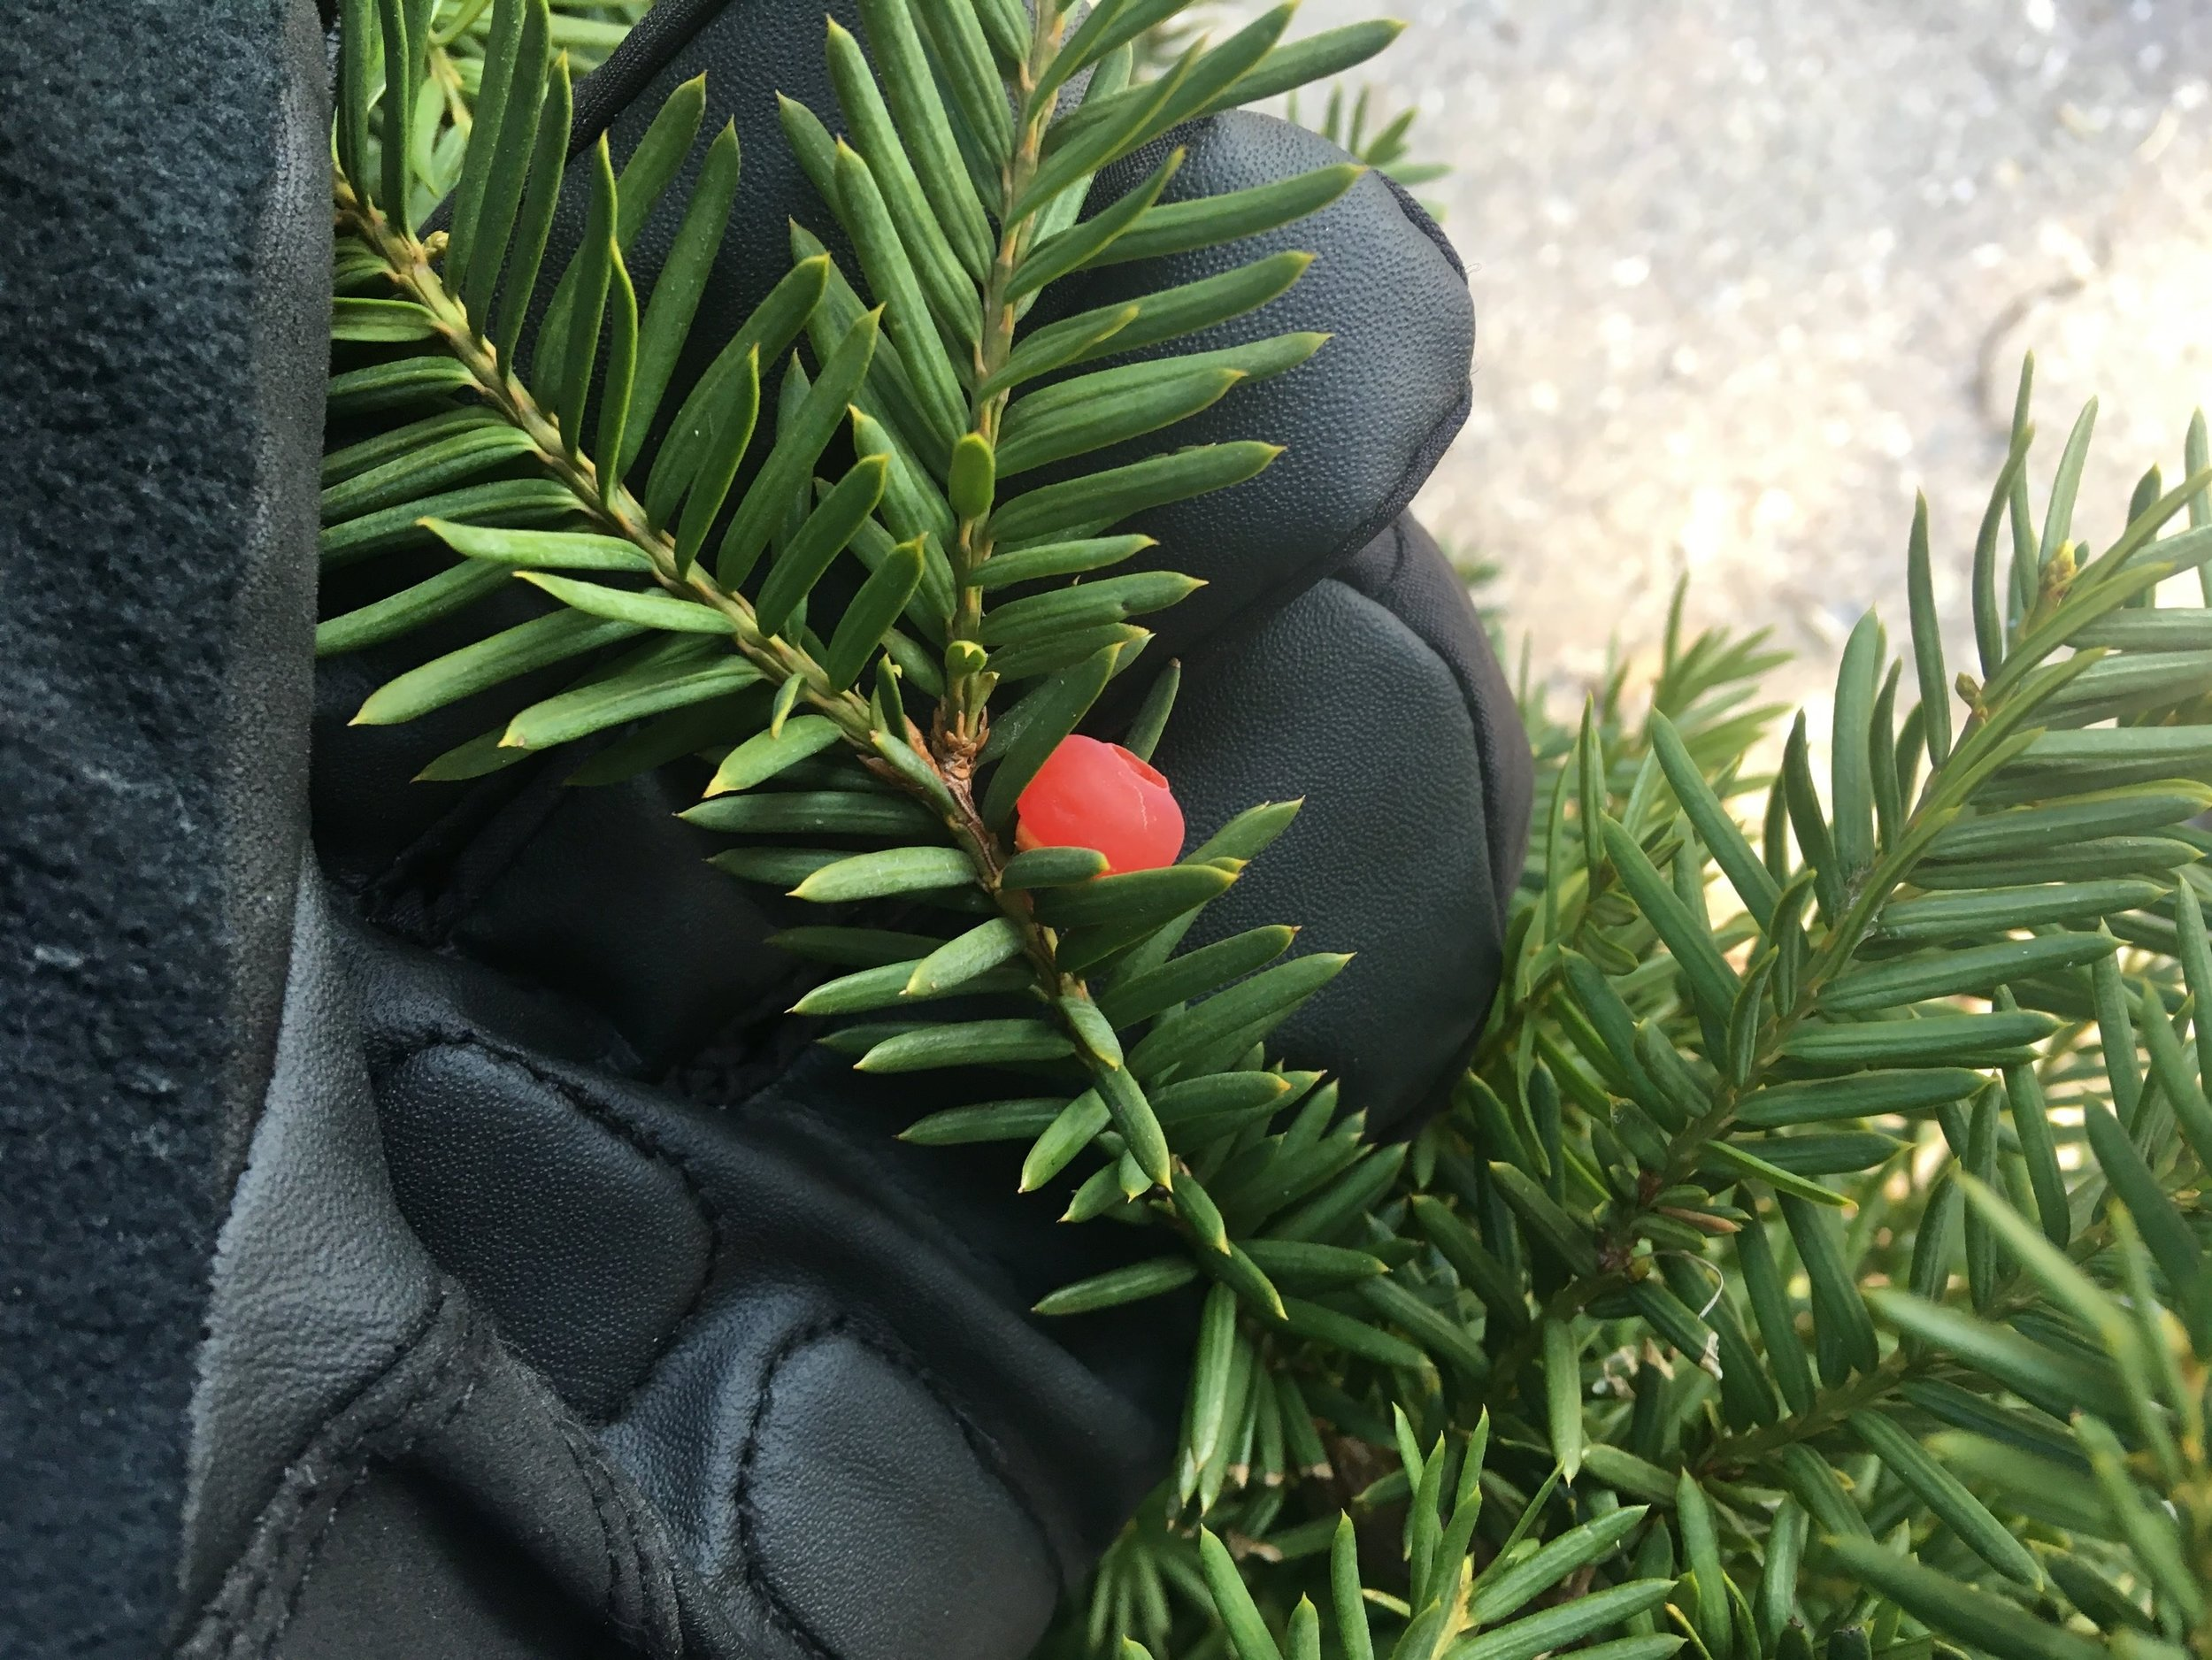 Yew leaves are flattened and have sharp tips.  Beware- toxic!